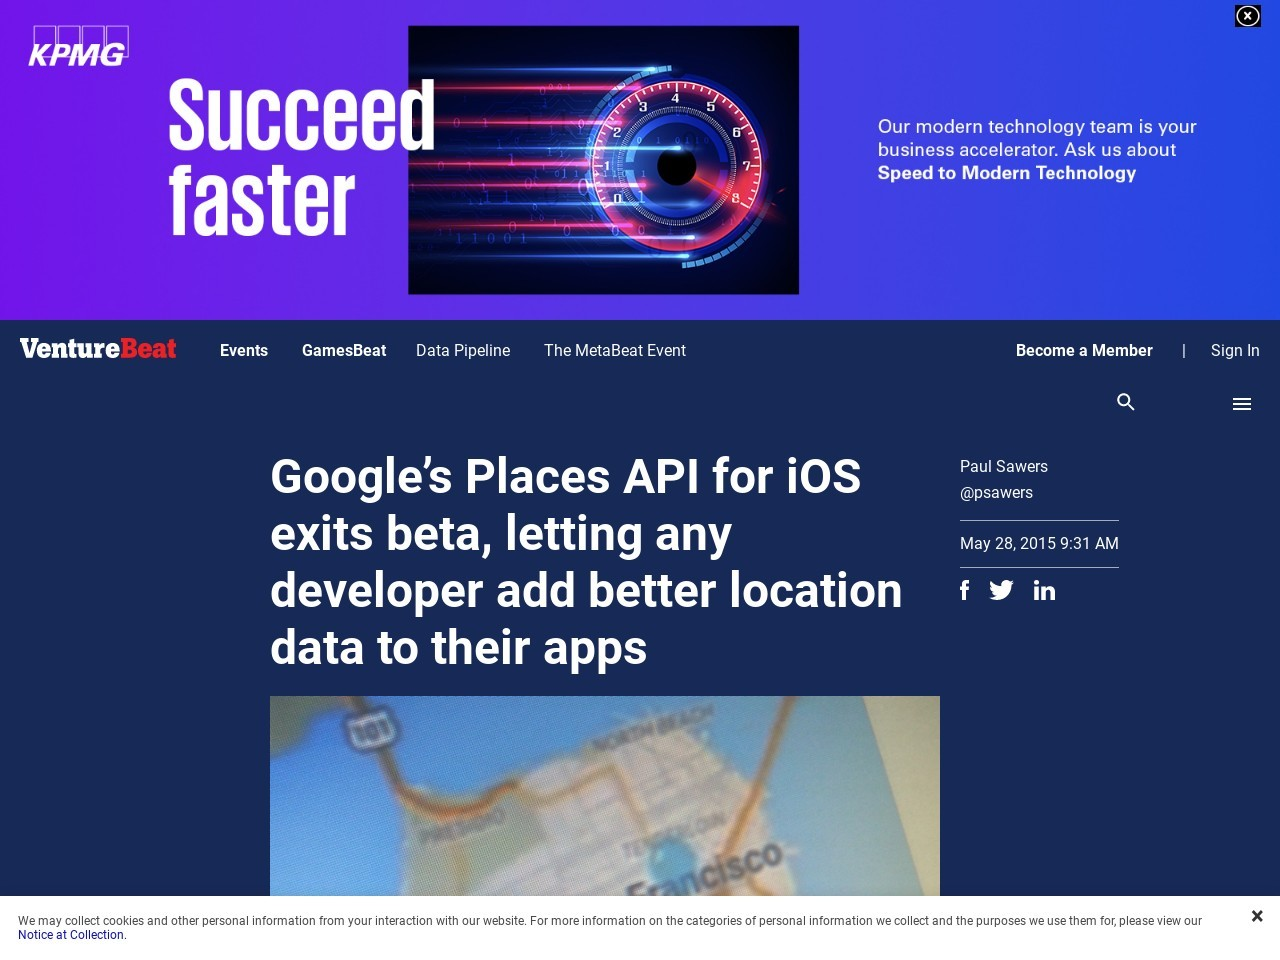 Google's Places API for iOS exits beta, letting any developer …